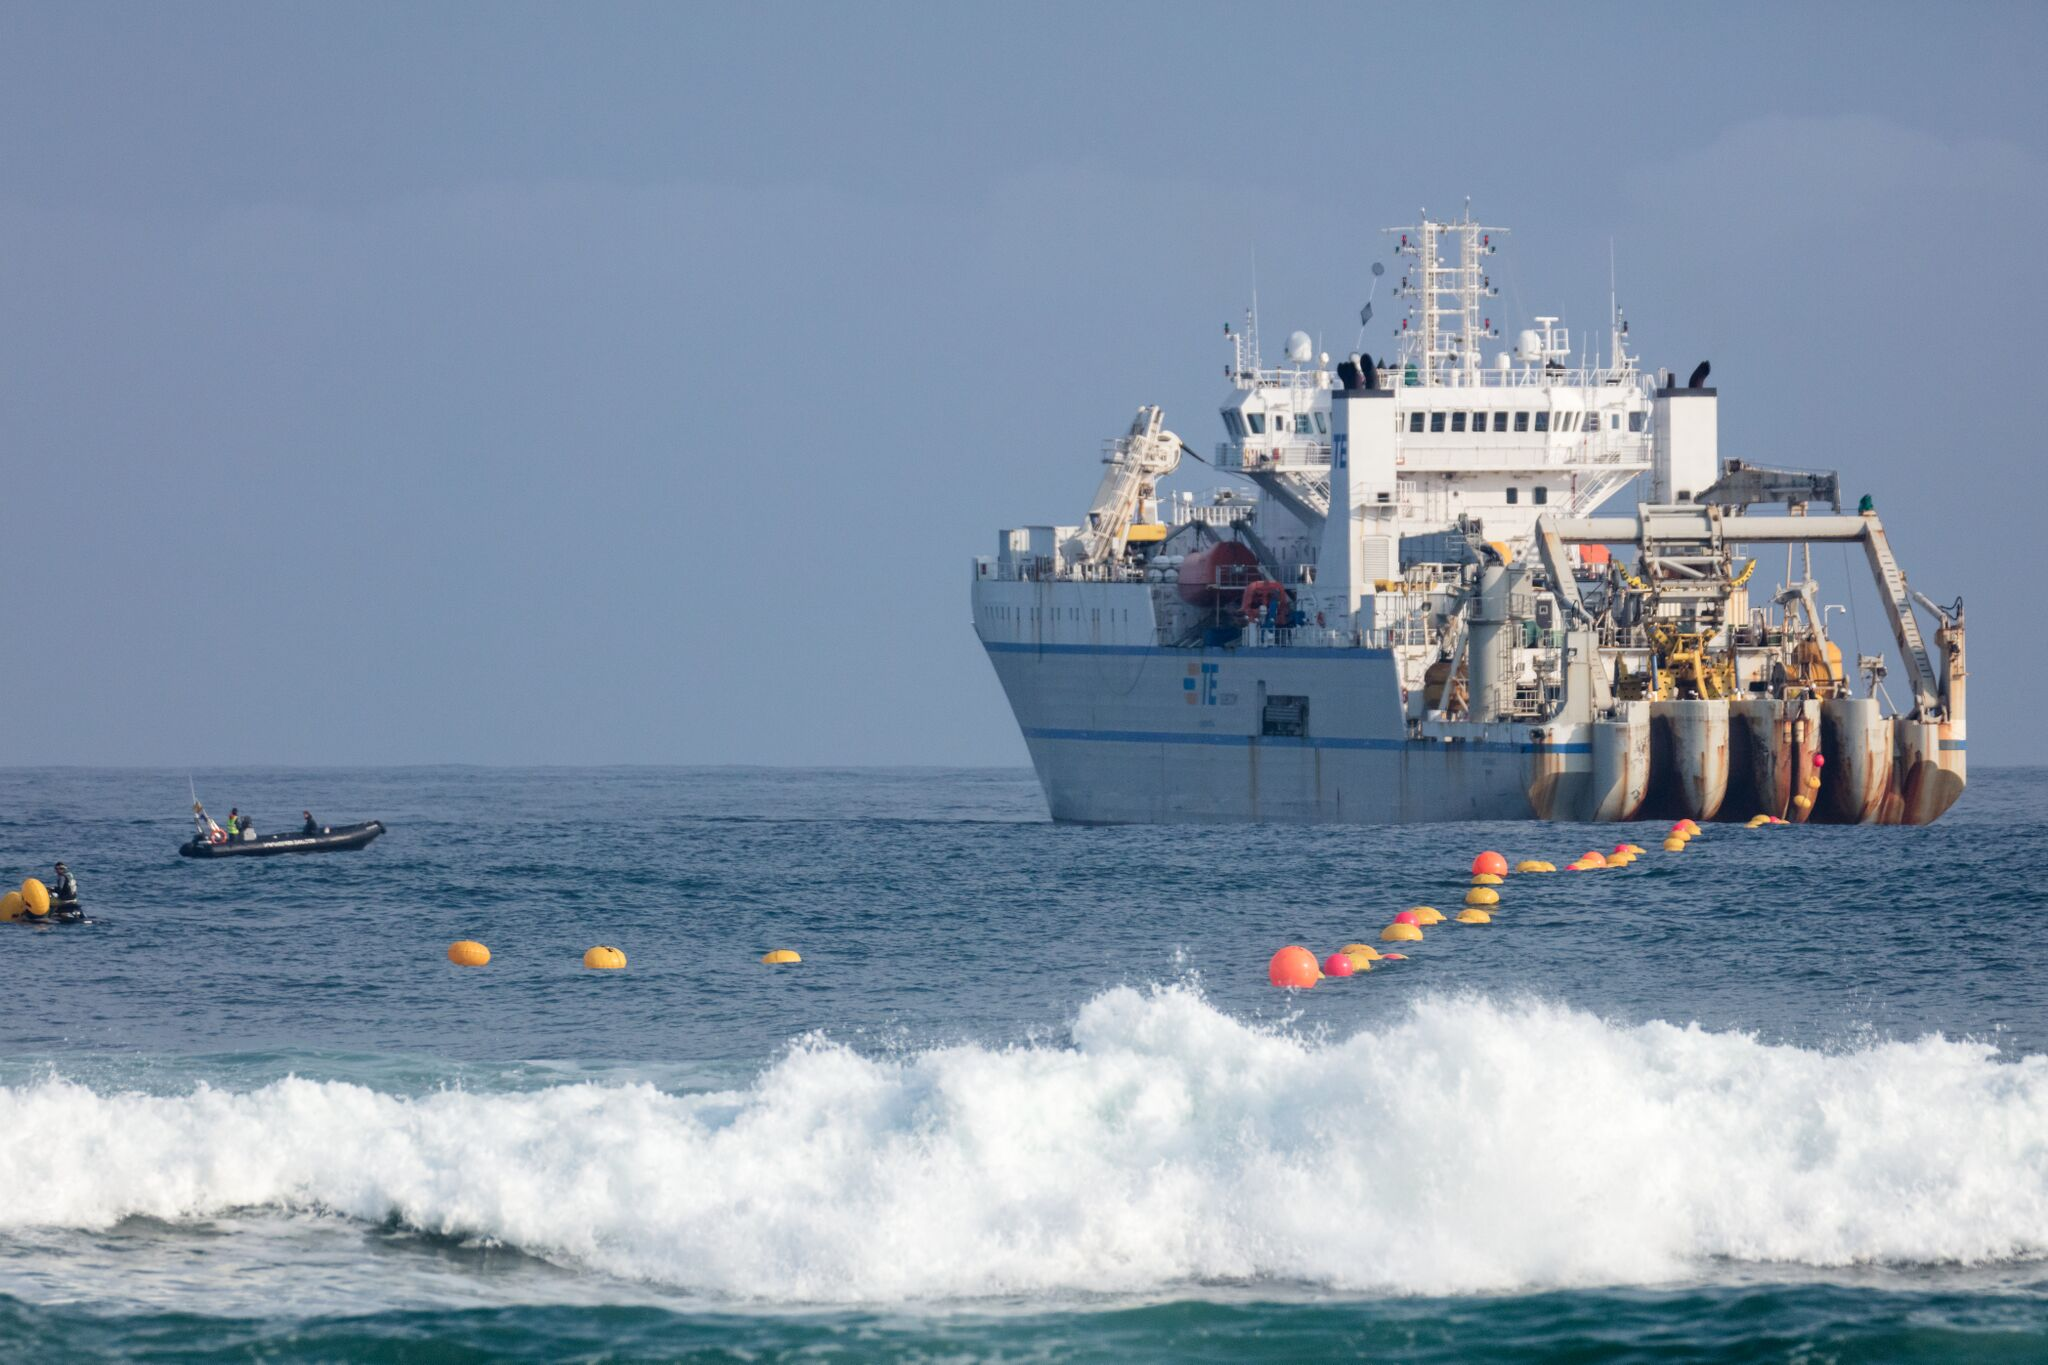 The Marea subsea cable being installed. <br> Image source: Microsoft.